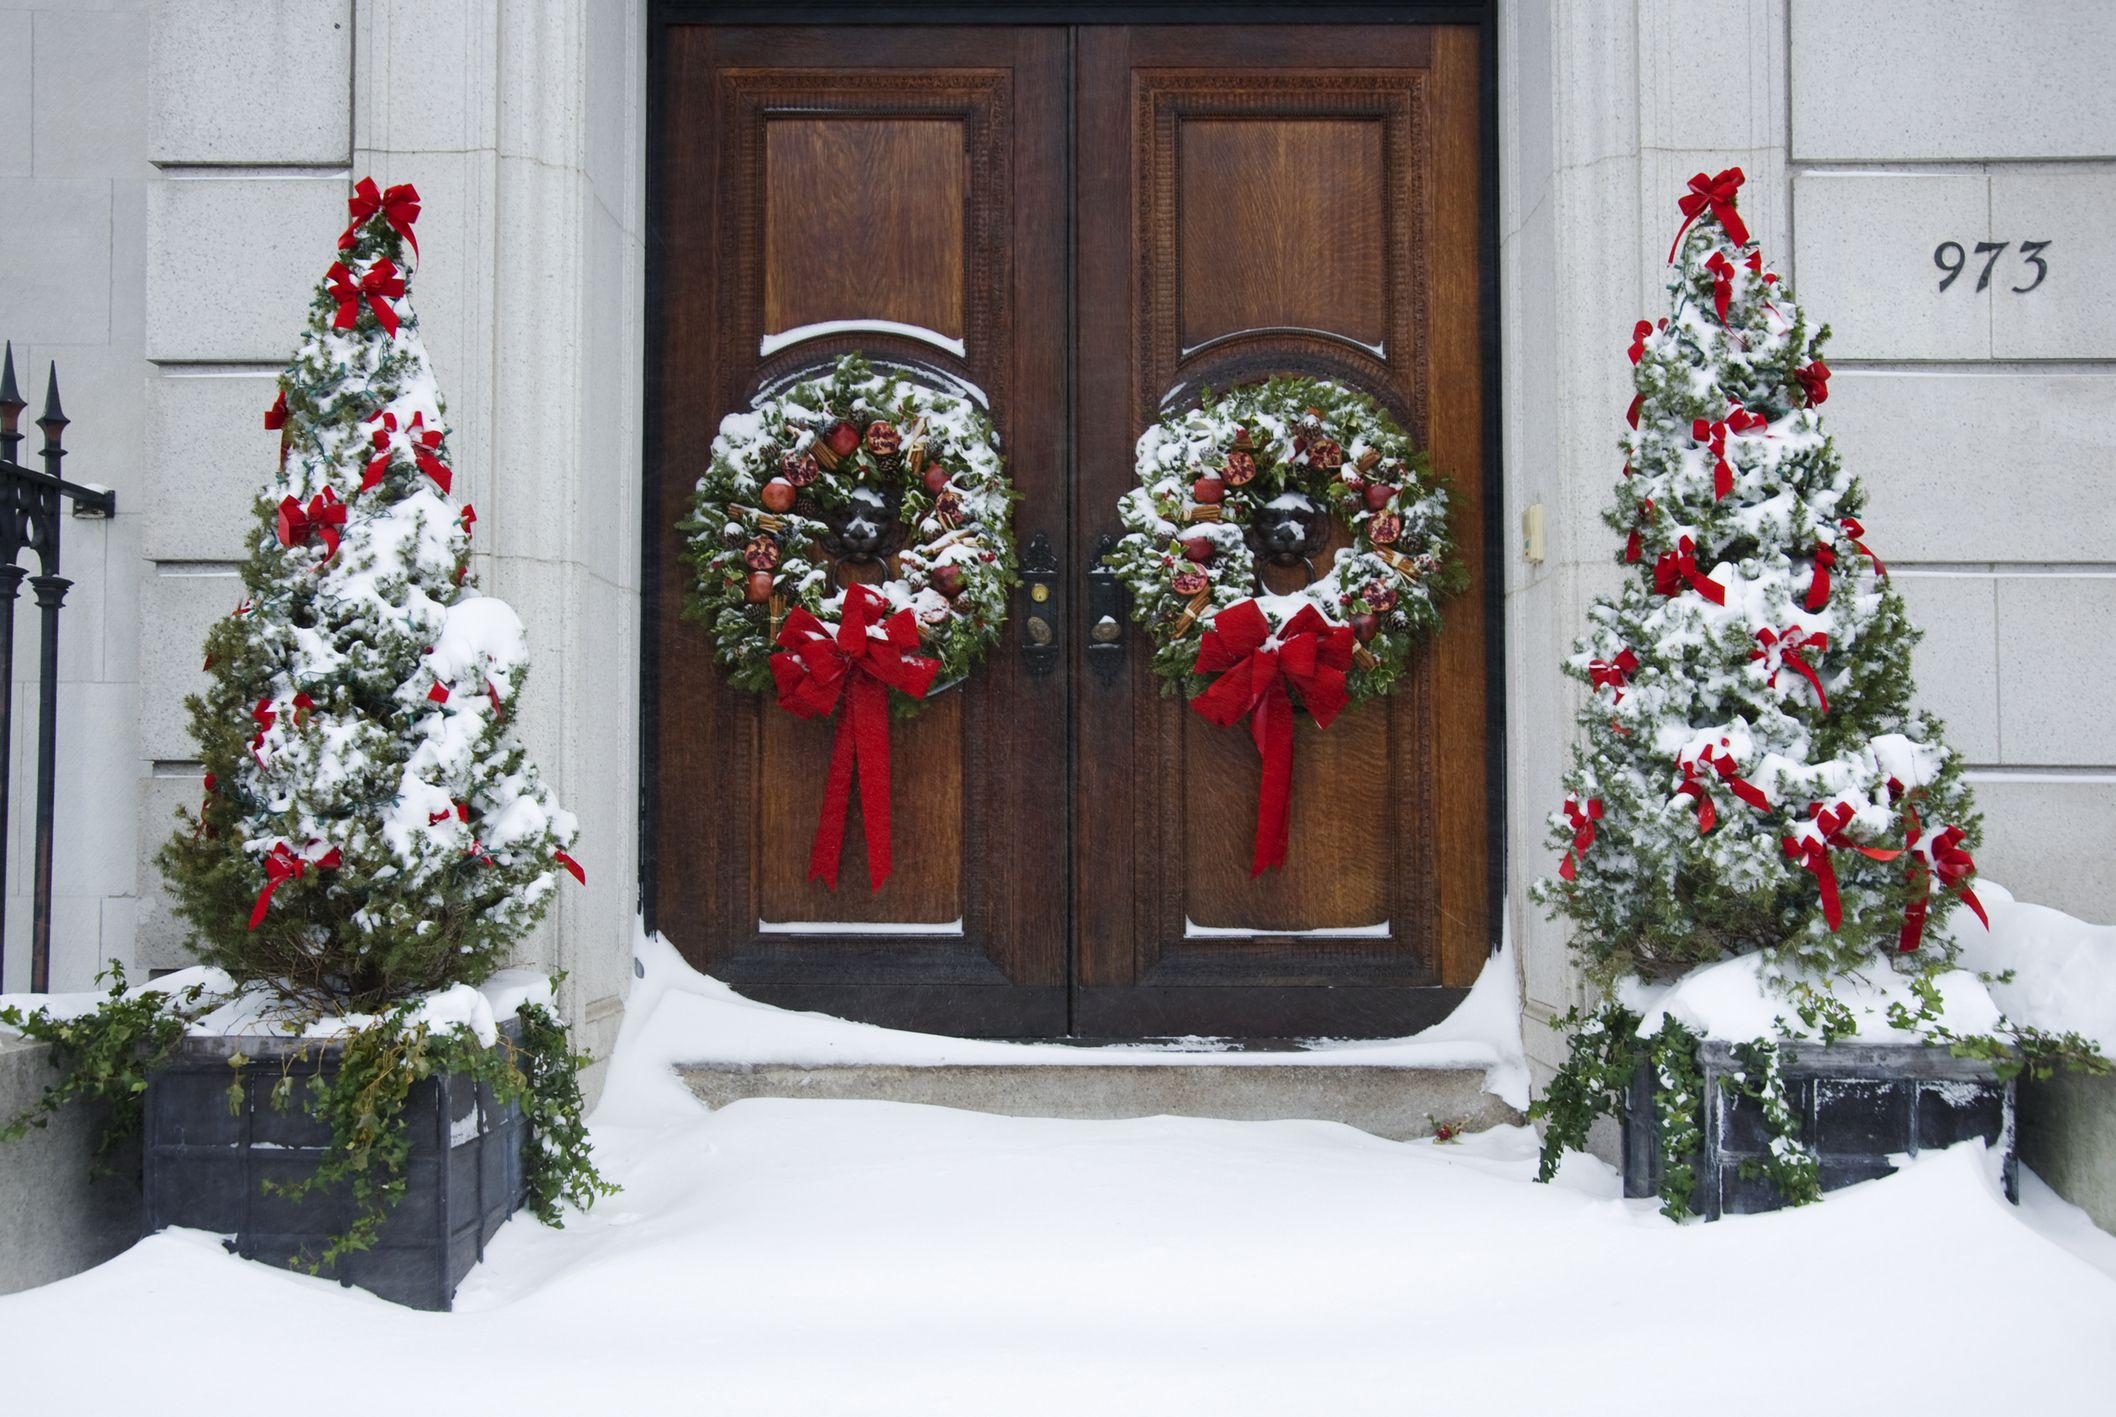 100 Backyards Christmas Wreath Door Decoration How  : Alberta spruce flank double doors big 57e424bd3df78c690f789842 from cheyas.com size 2116 x 1417 jpeg 435kB